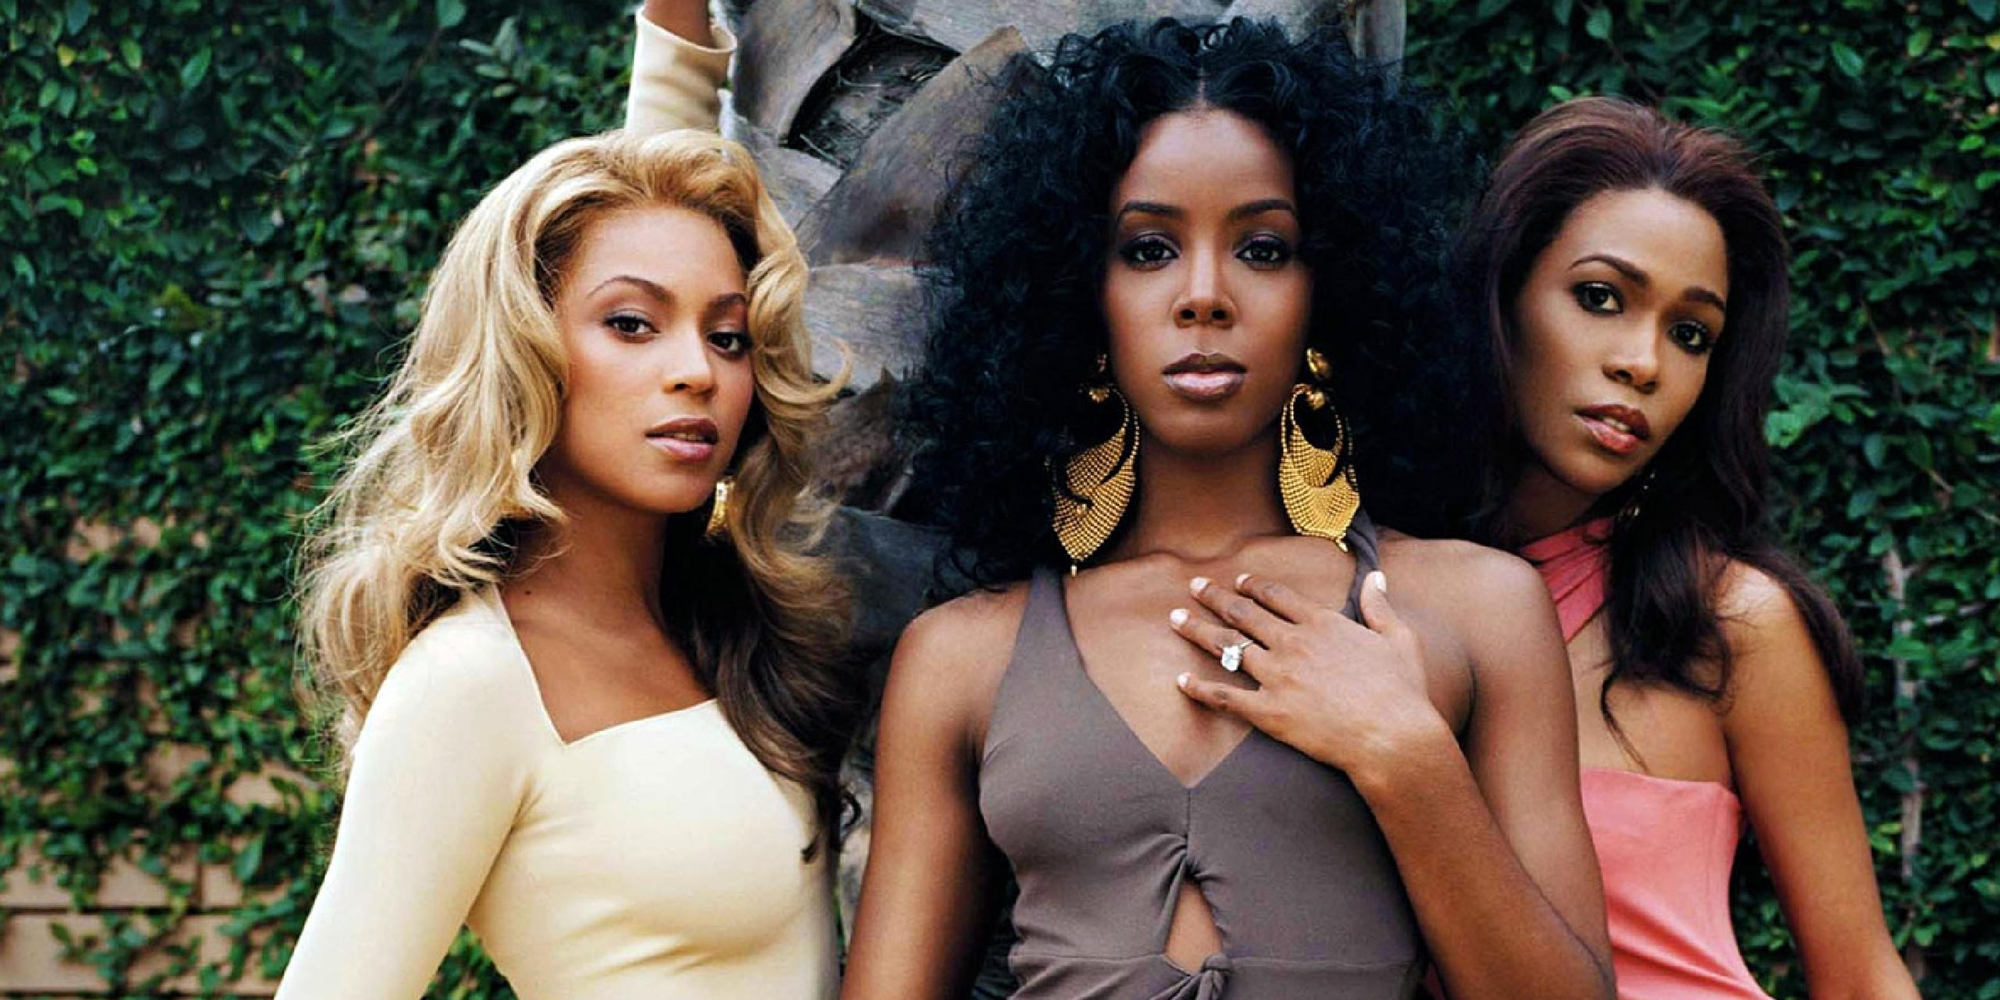 destiny's child retour dementi erratum